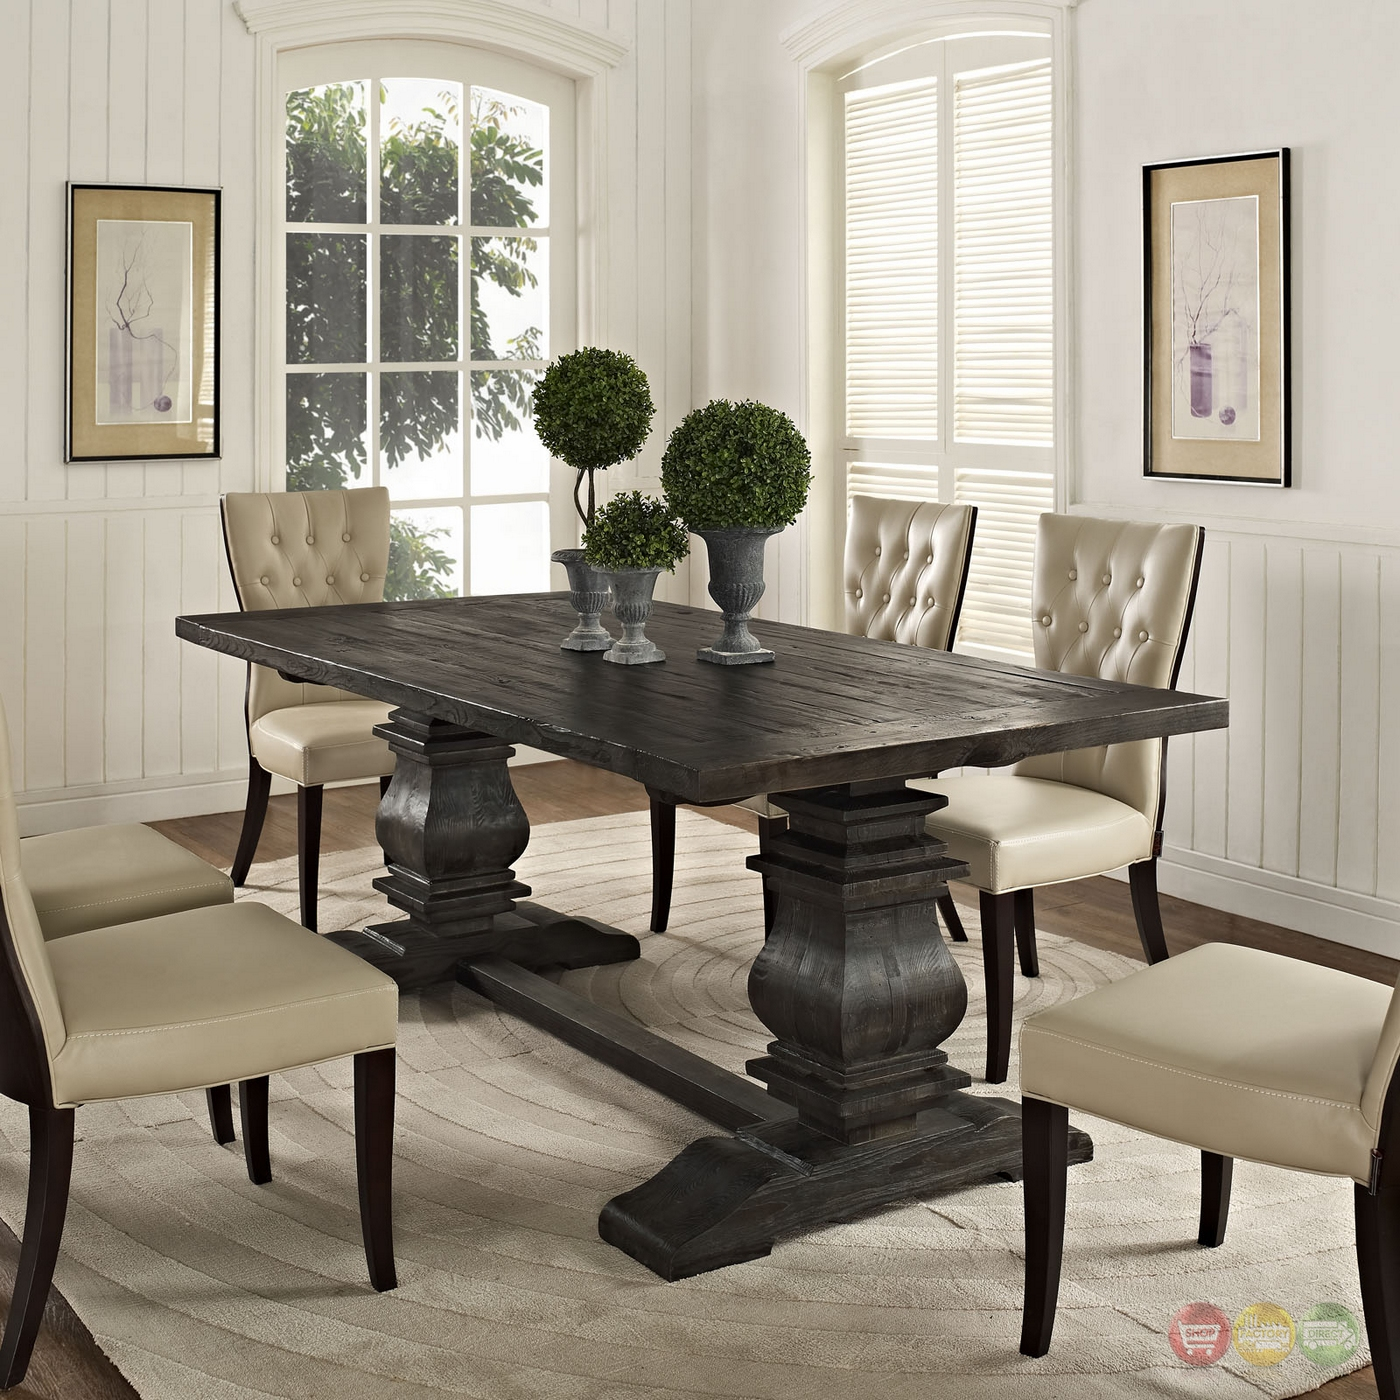 """Dining Wood Table: Column Modern Rustic 79"""" Solid Pine Wood Dining Table, Black"""